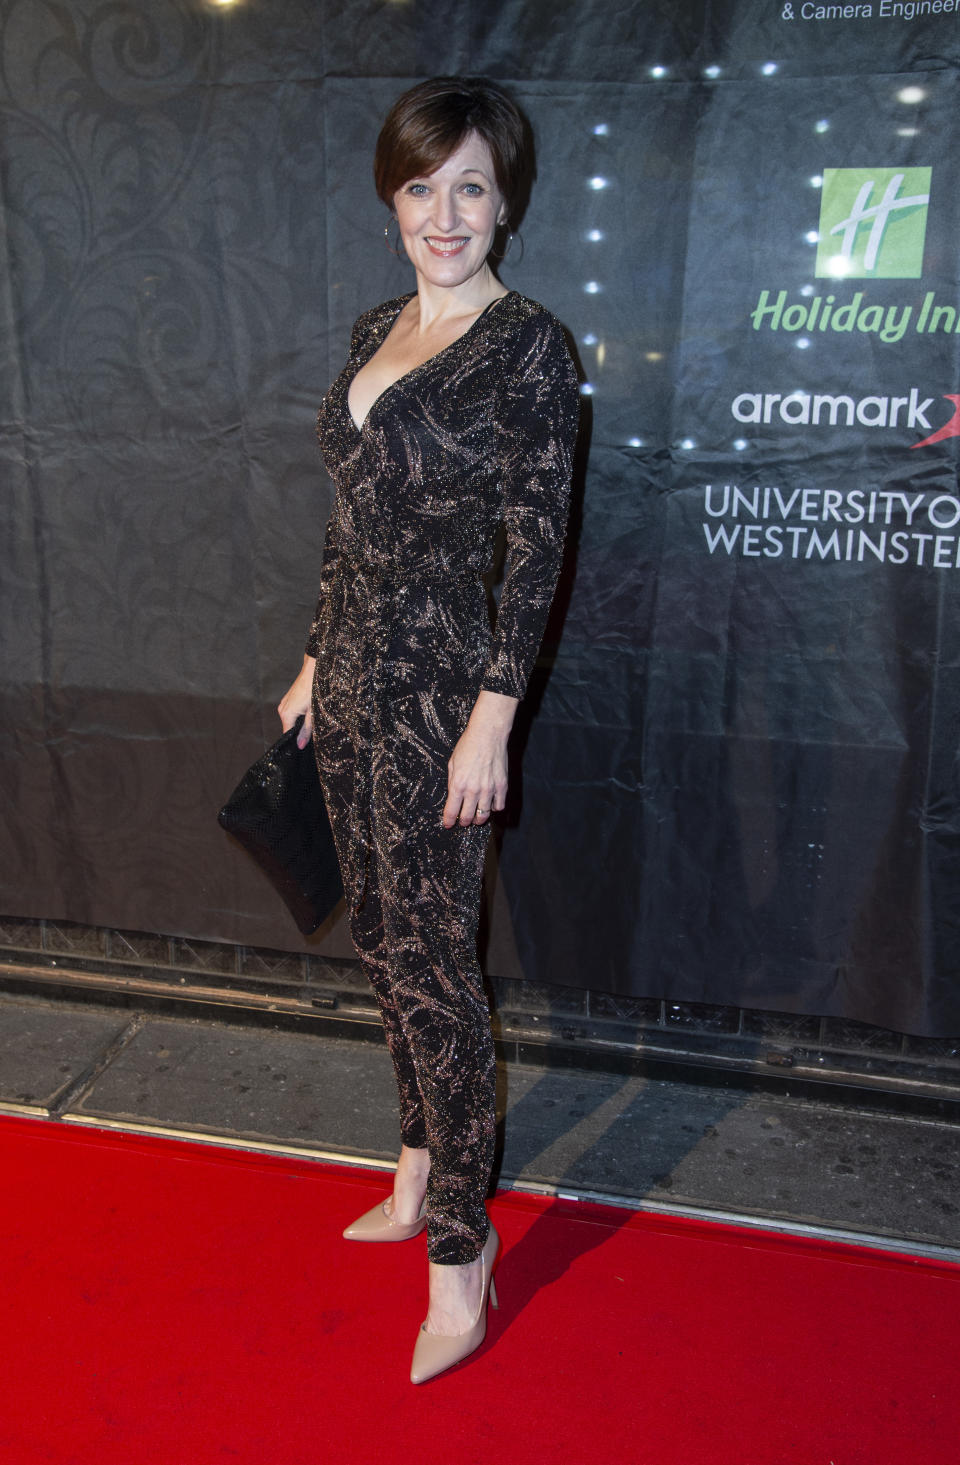 LONDON, UNITED KINGDOM - 2019/01/10: Kacey Ainsworth attends the 2019 Gold Movie Awards at Regent Street Cinema in London, England. (Photo by Gary Mitchell/SOPA Images/LightRocket via Getty Images)